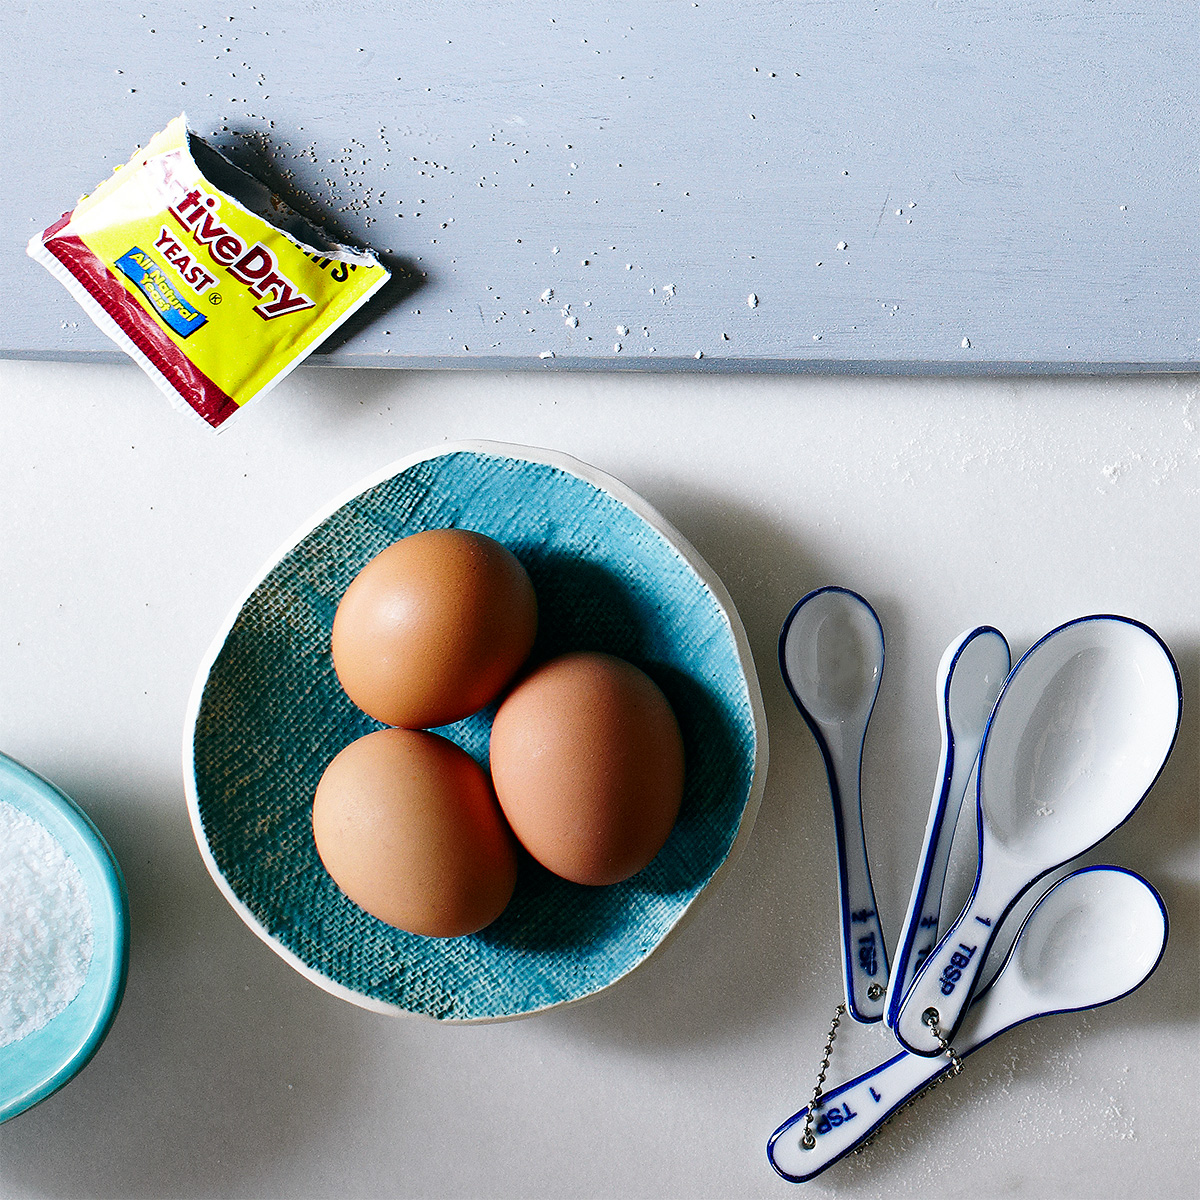 yeast eggs and measuring spoons